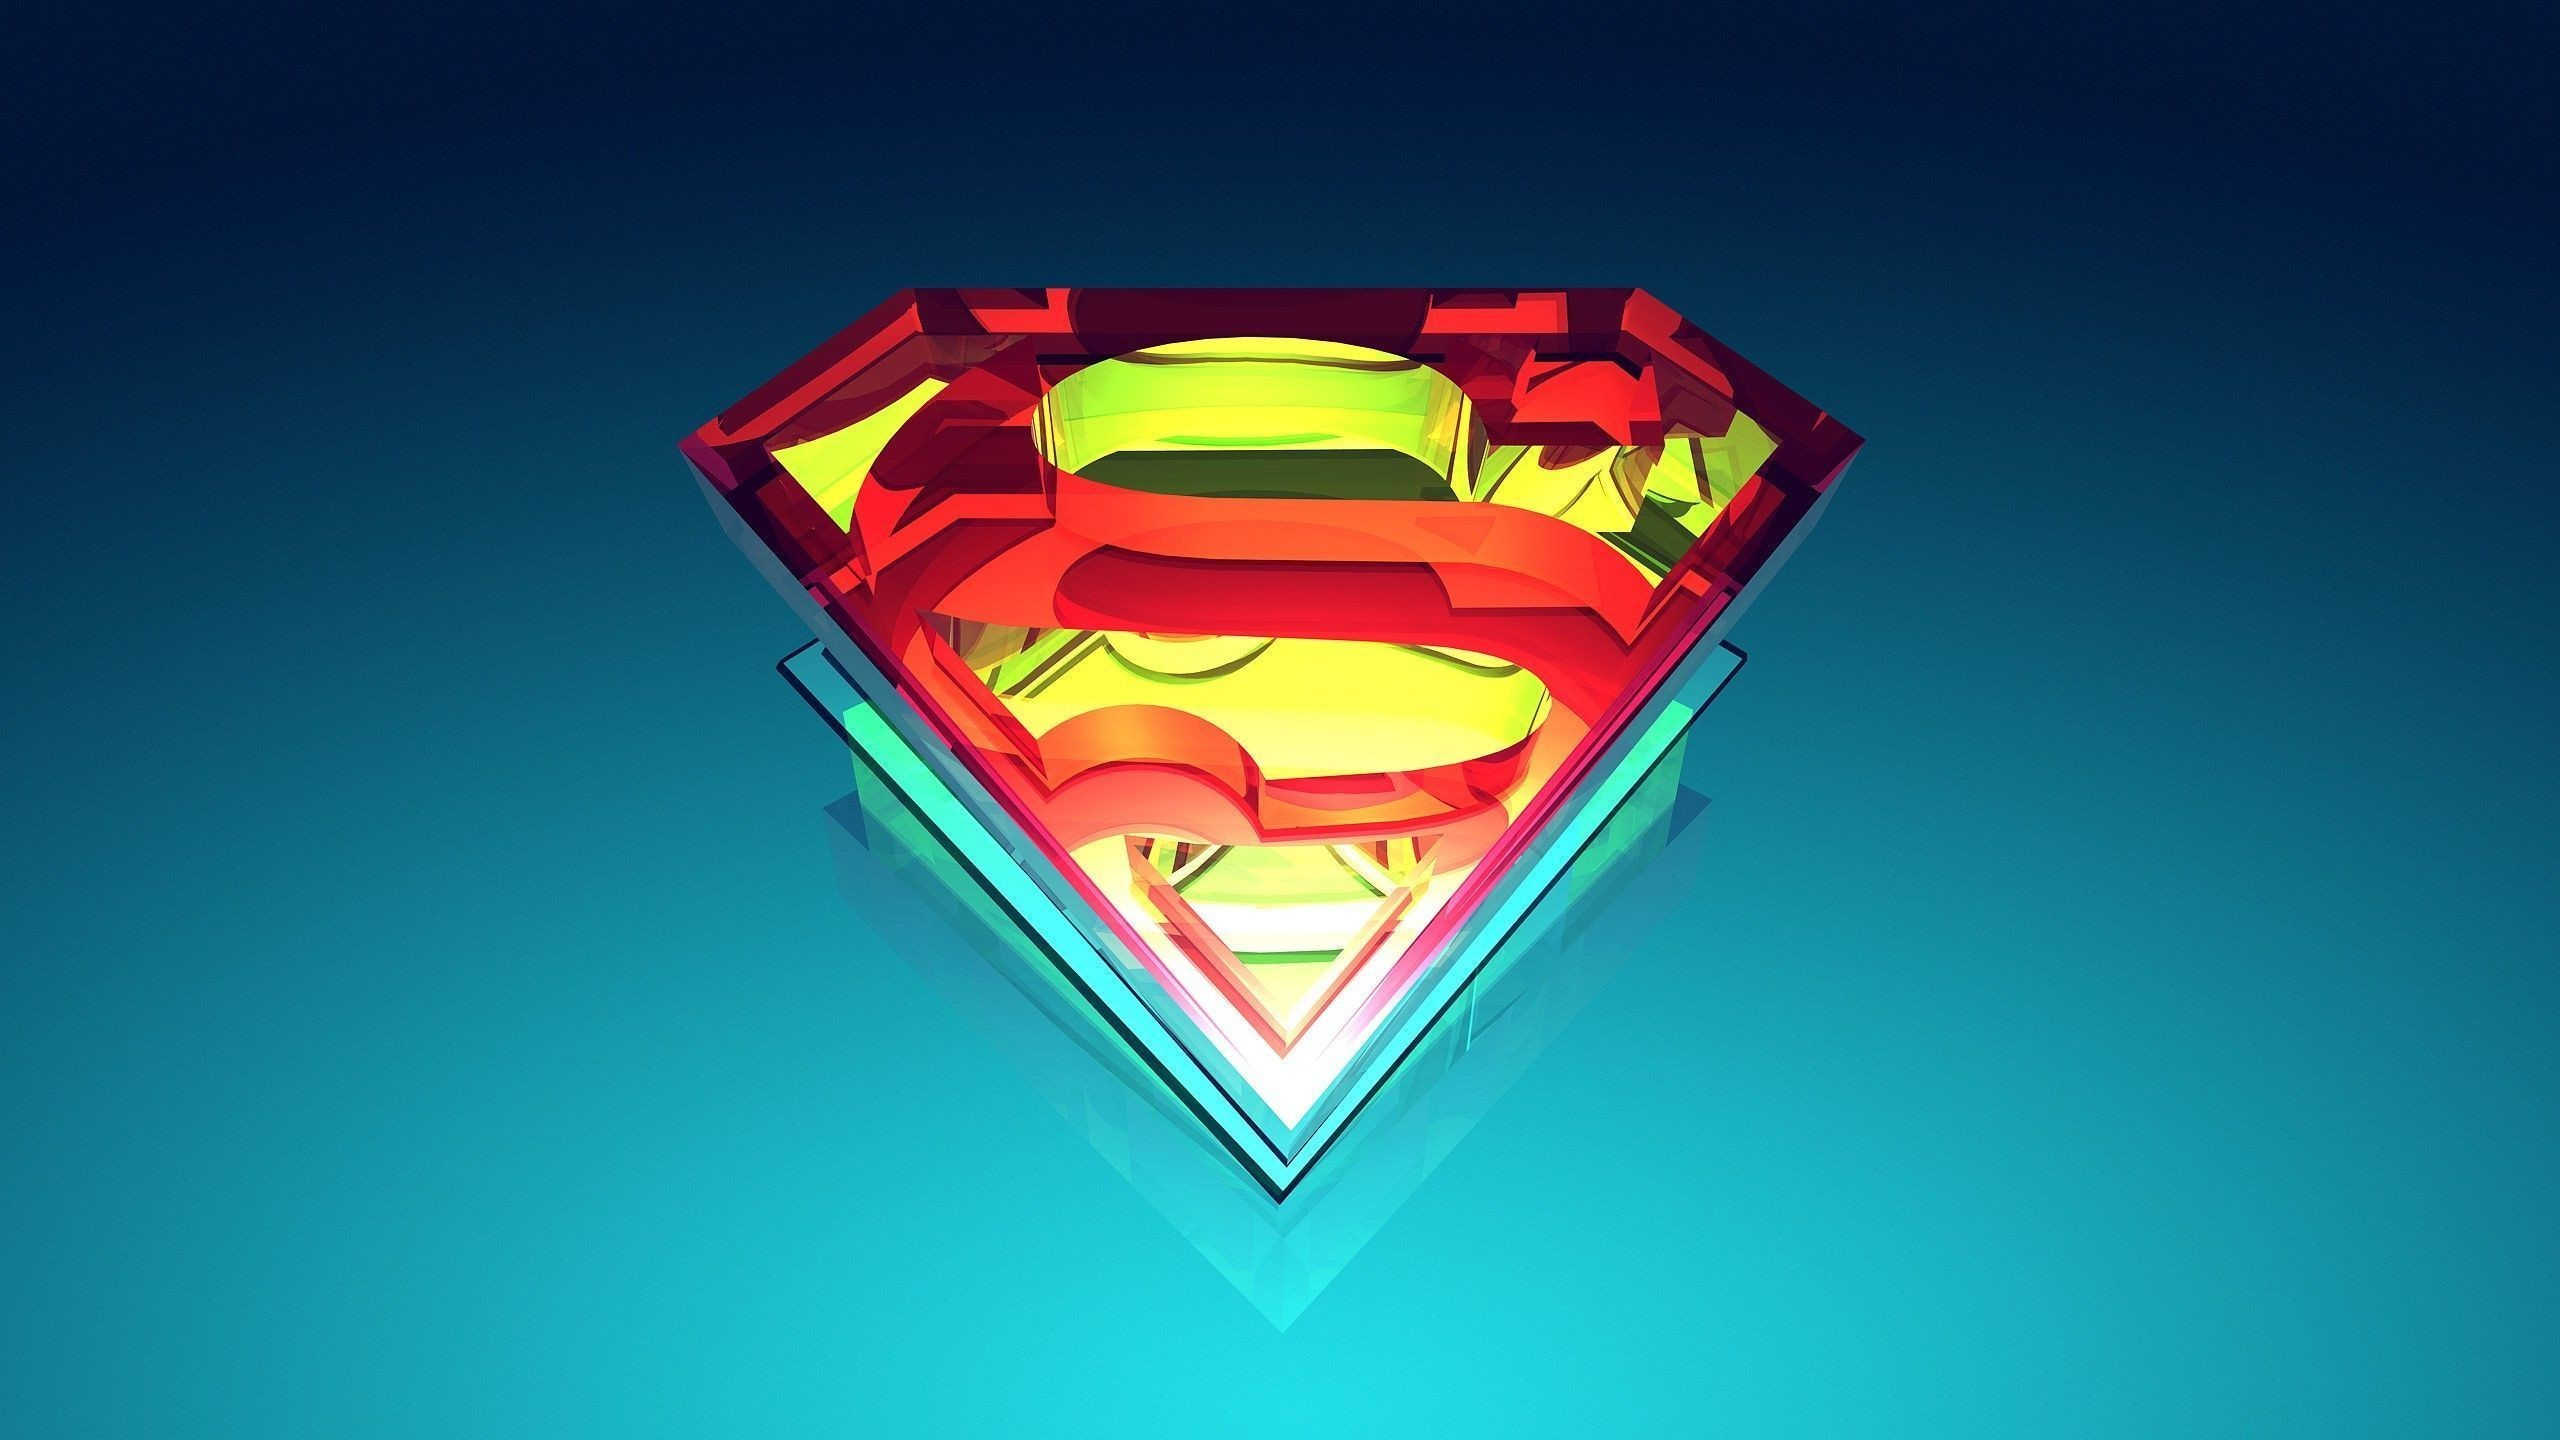 2560x1440  Abstract superman logo wallpaper.